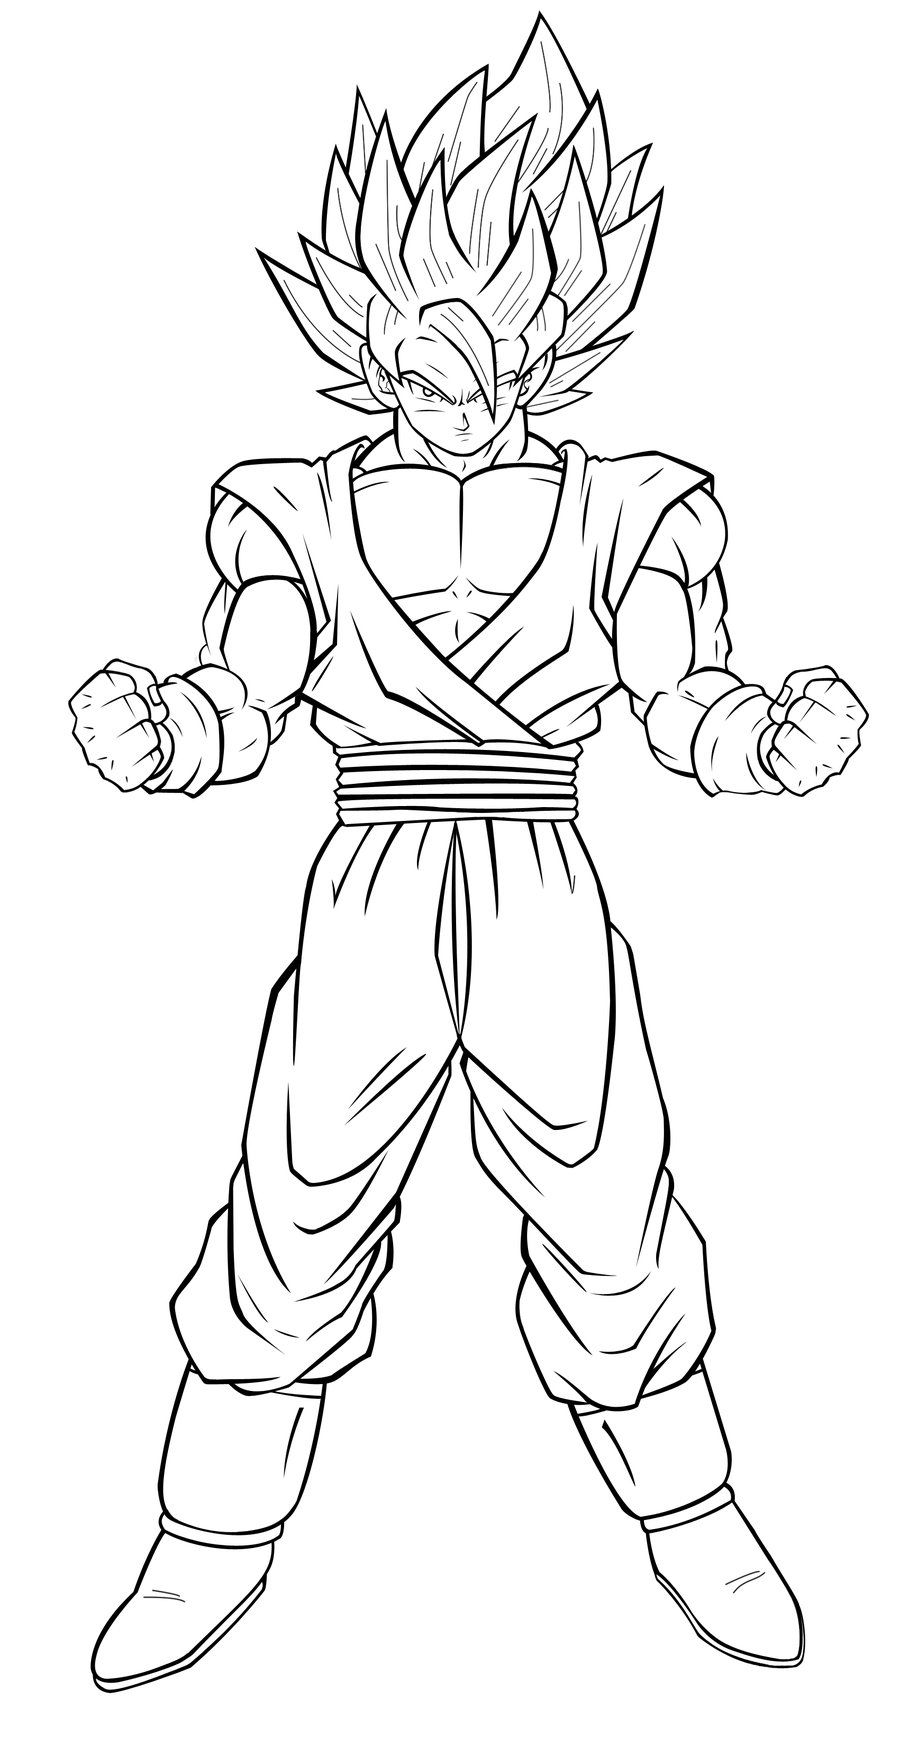 Goku Super Saiyan 4 Coloring Pages images | Isaiah Birthday | Pinterest